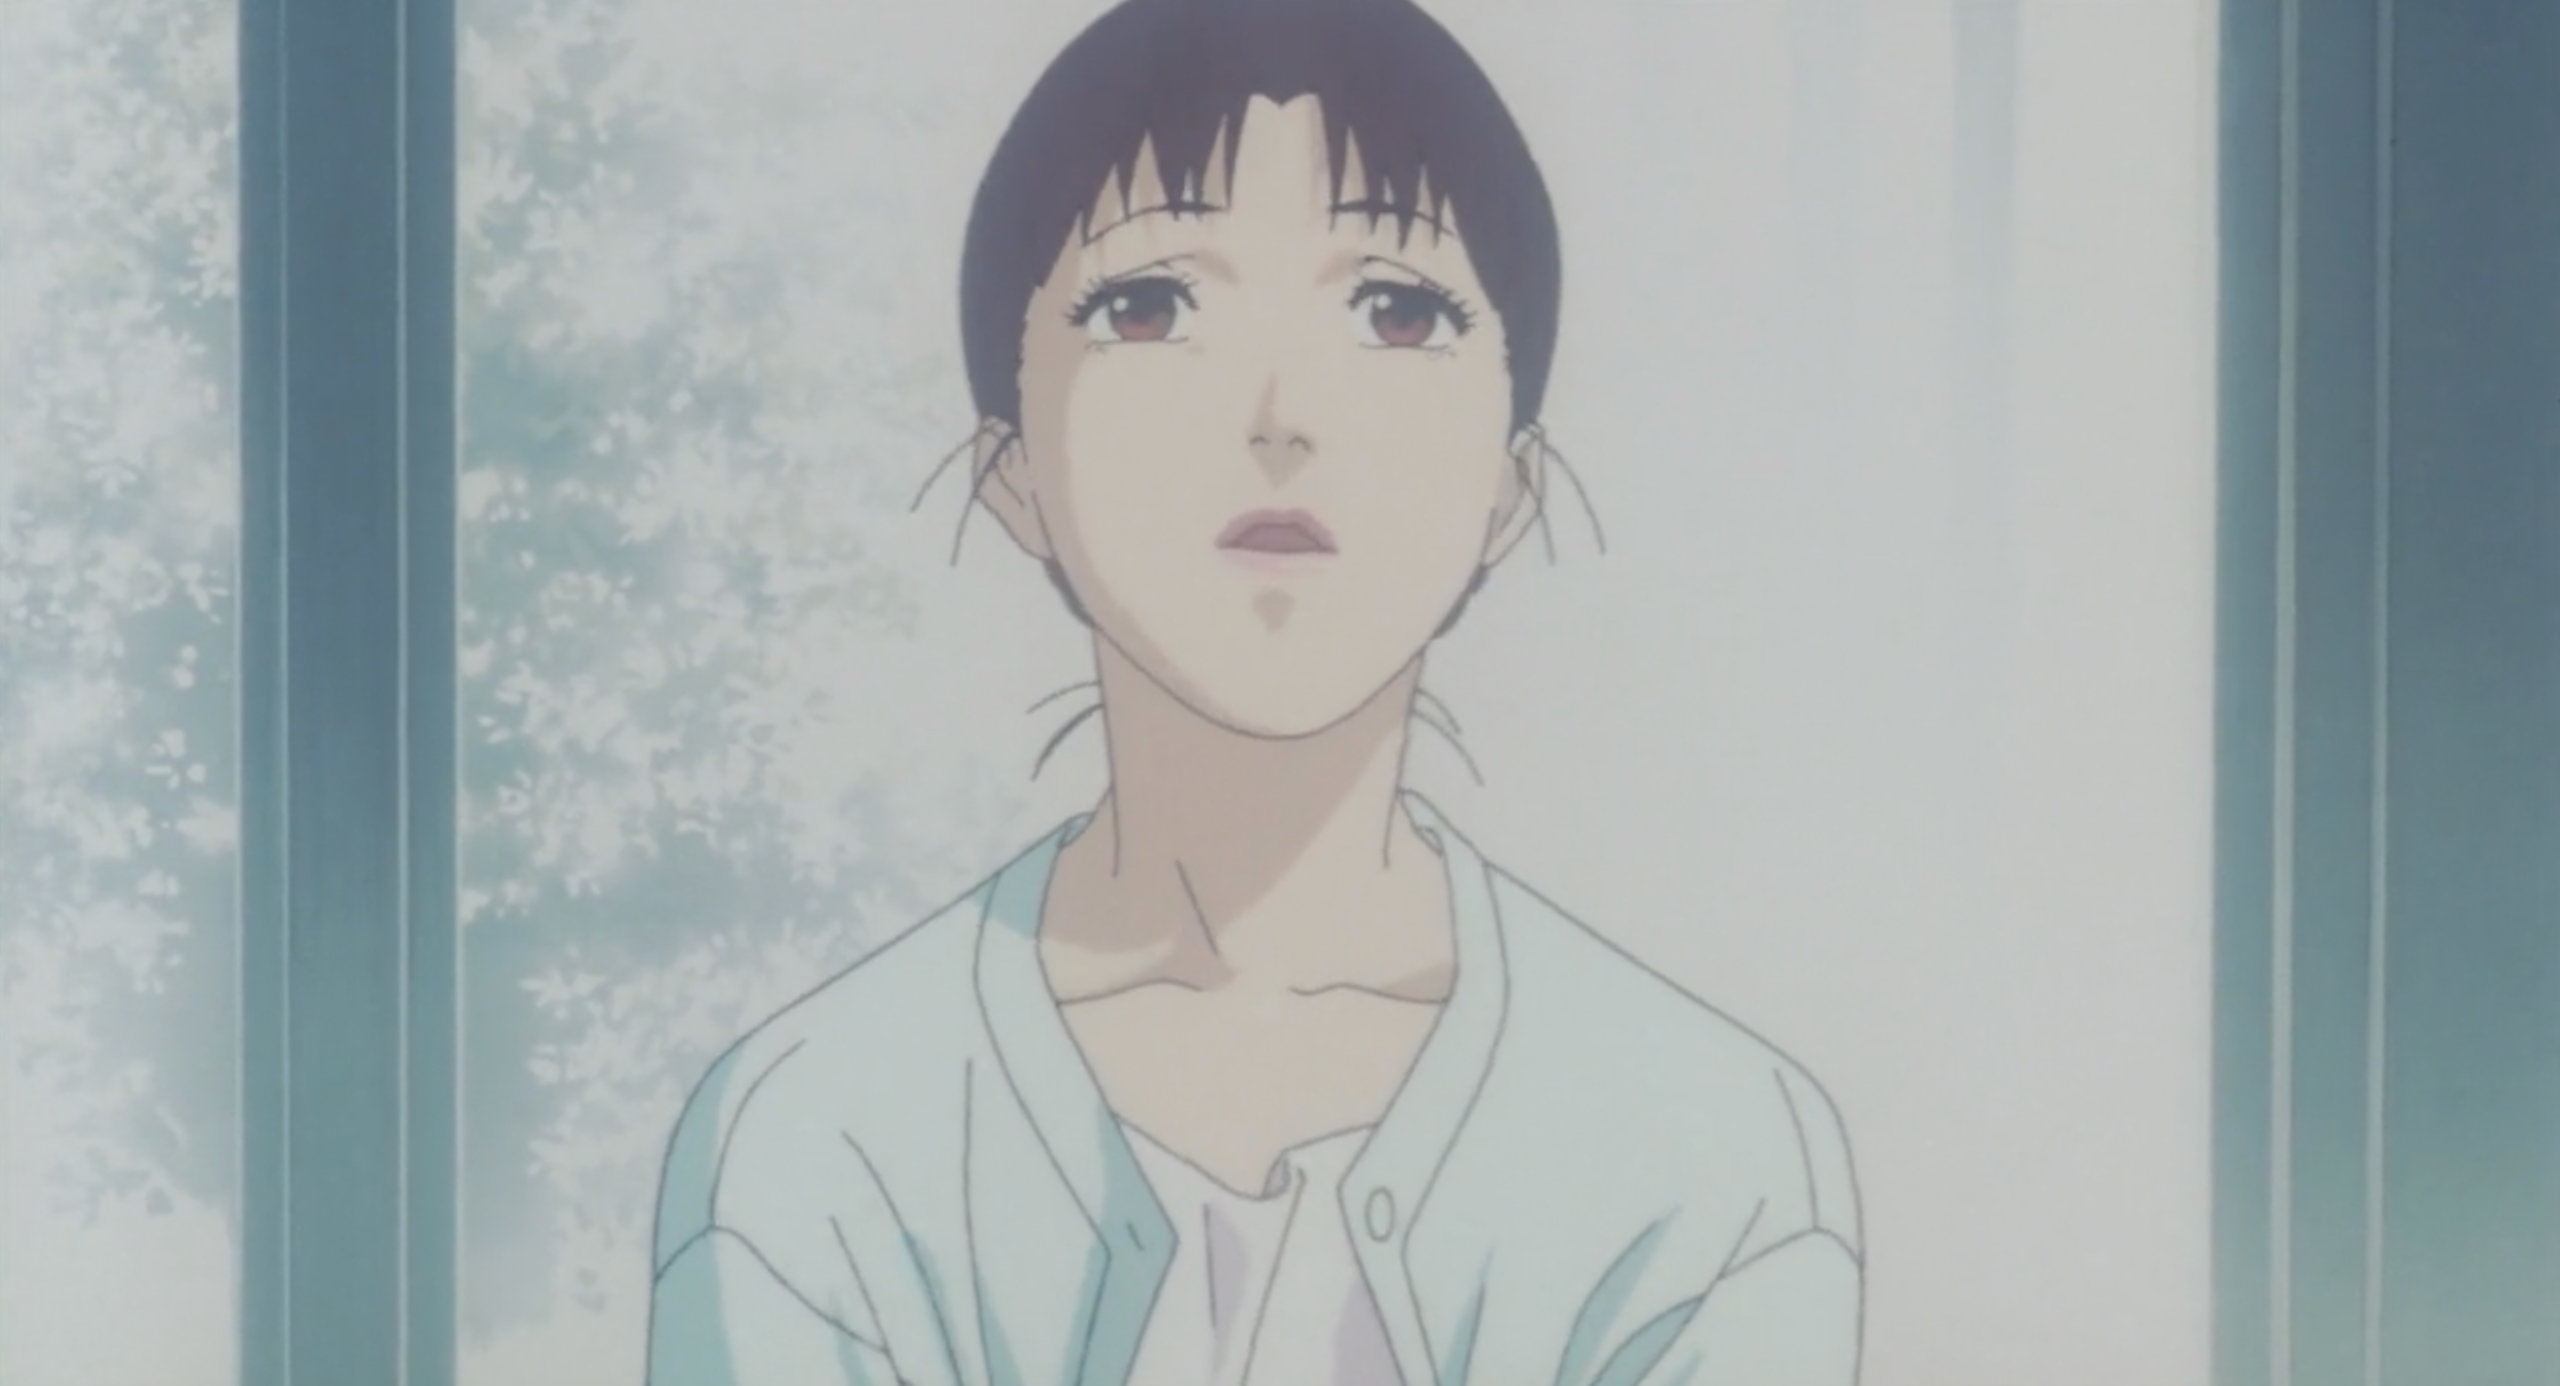 Mima looks up at the lights during a Dbouel Bind shoot in Perfect Blue